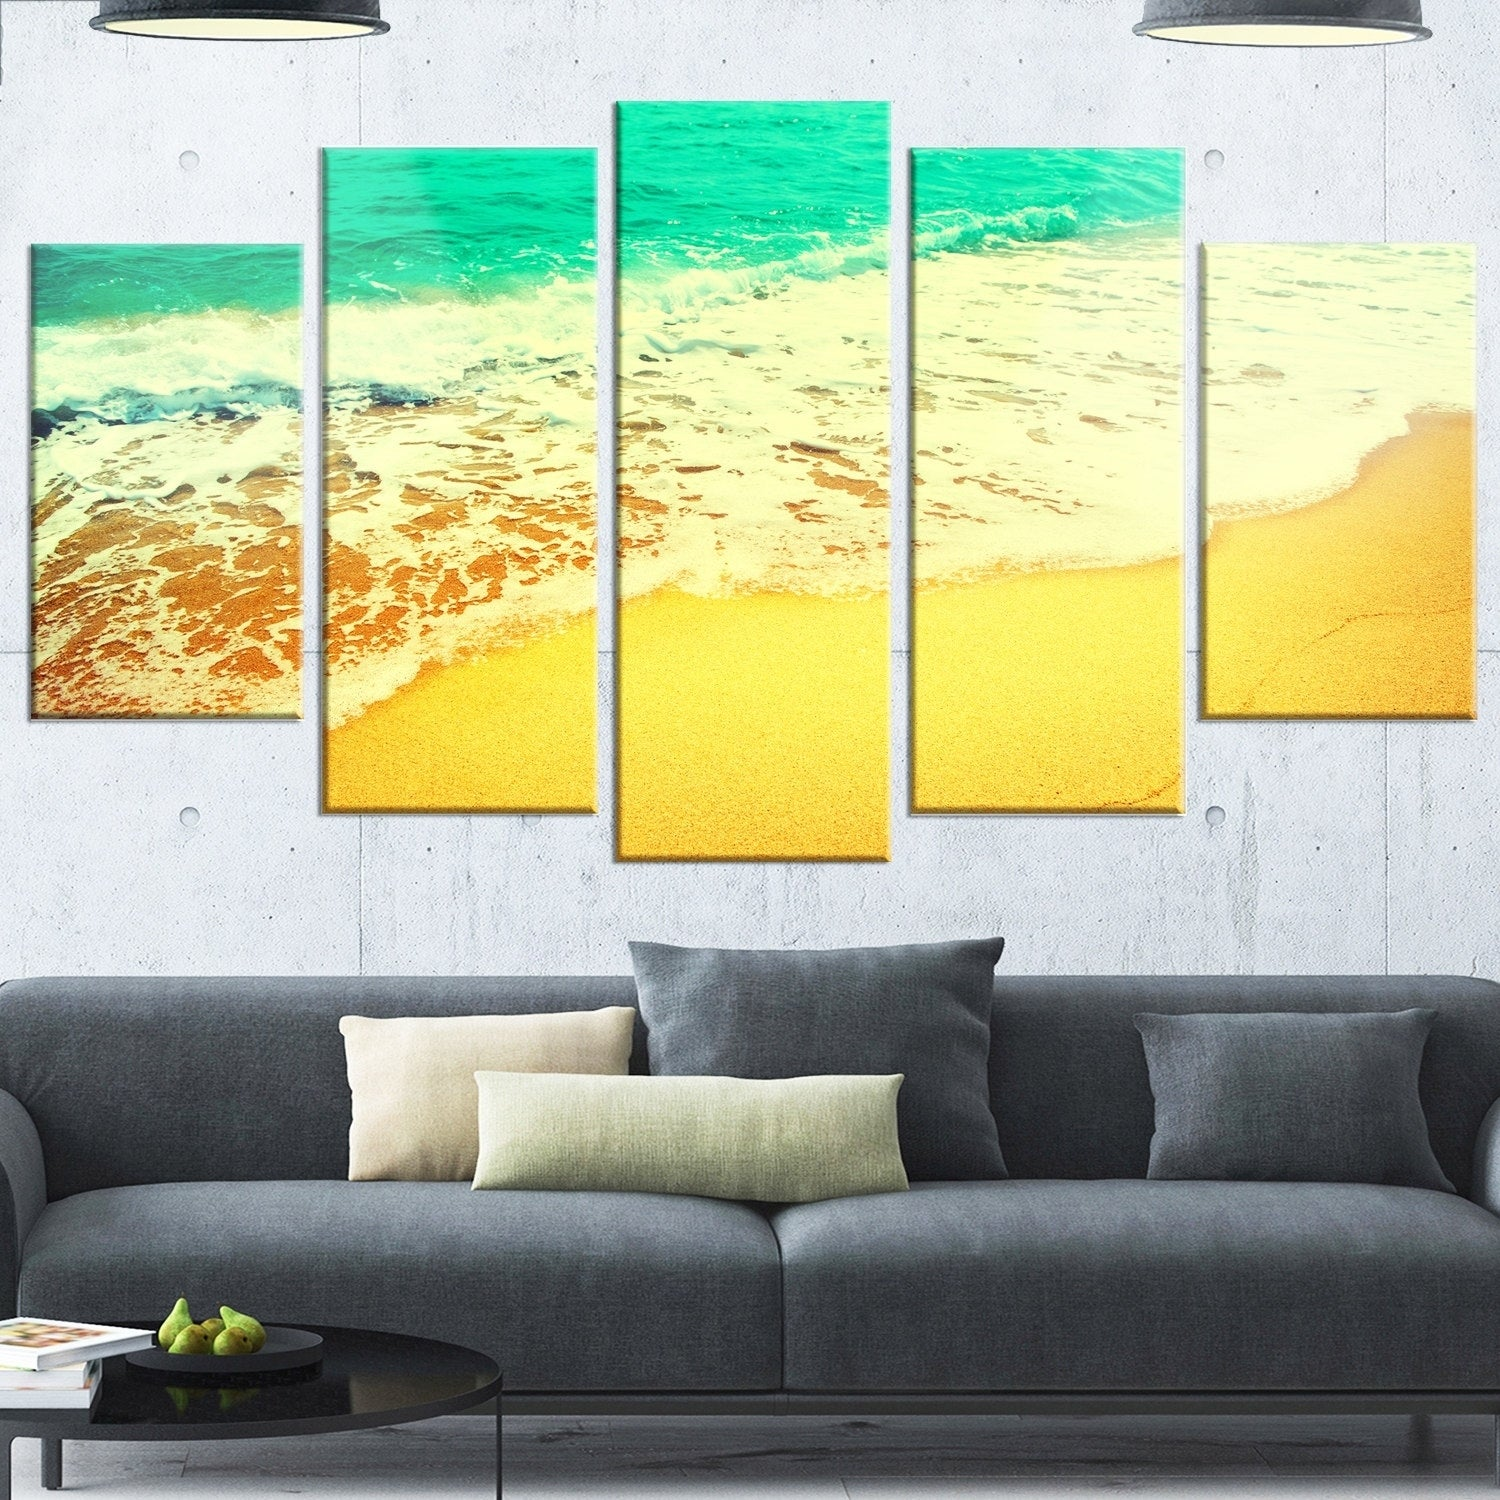 Contemporary Metal Wall Art Uk Only Photo - The Wall Art Decorations ...